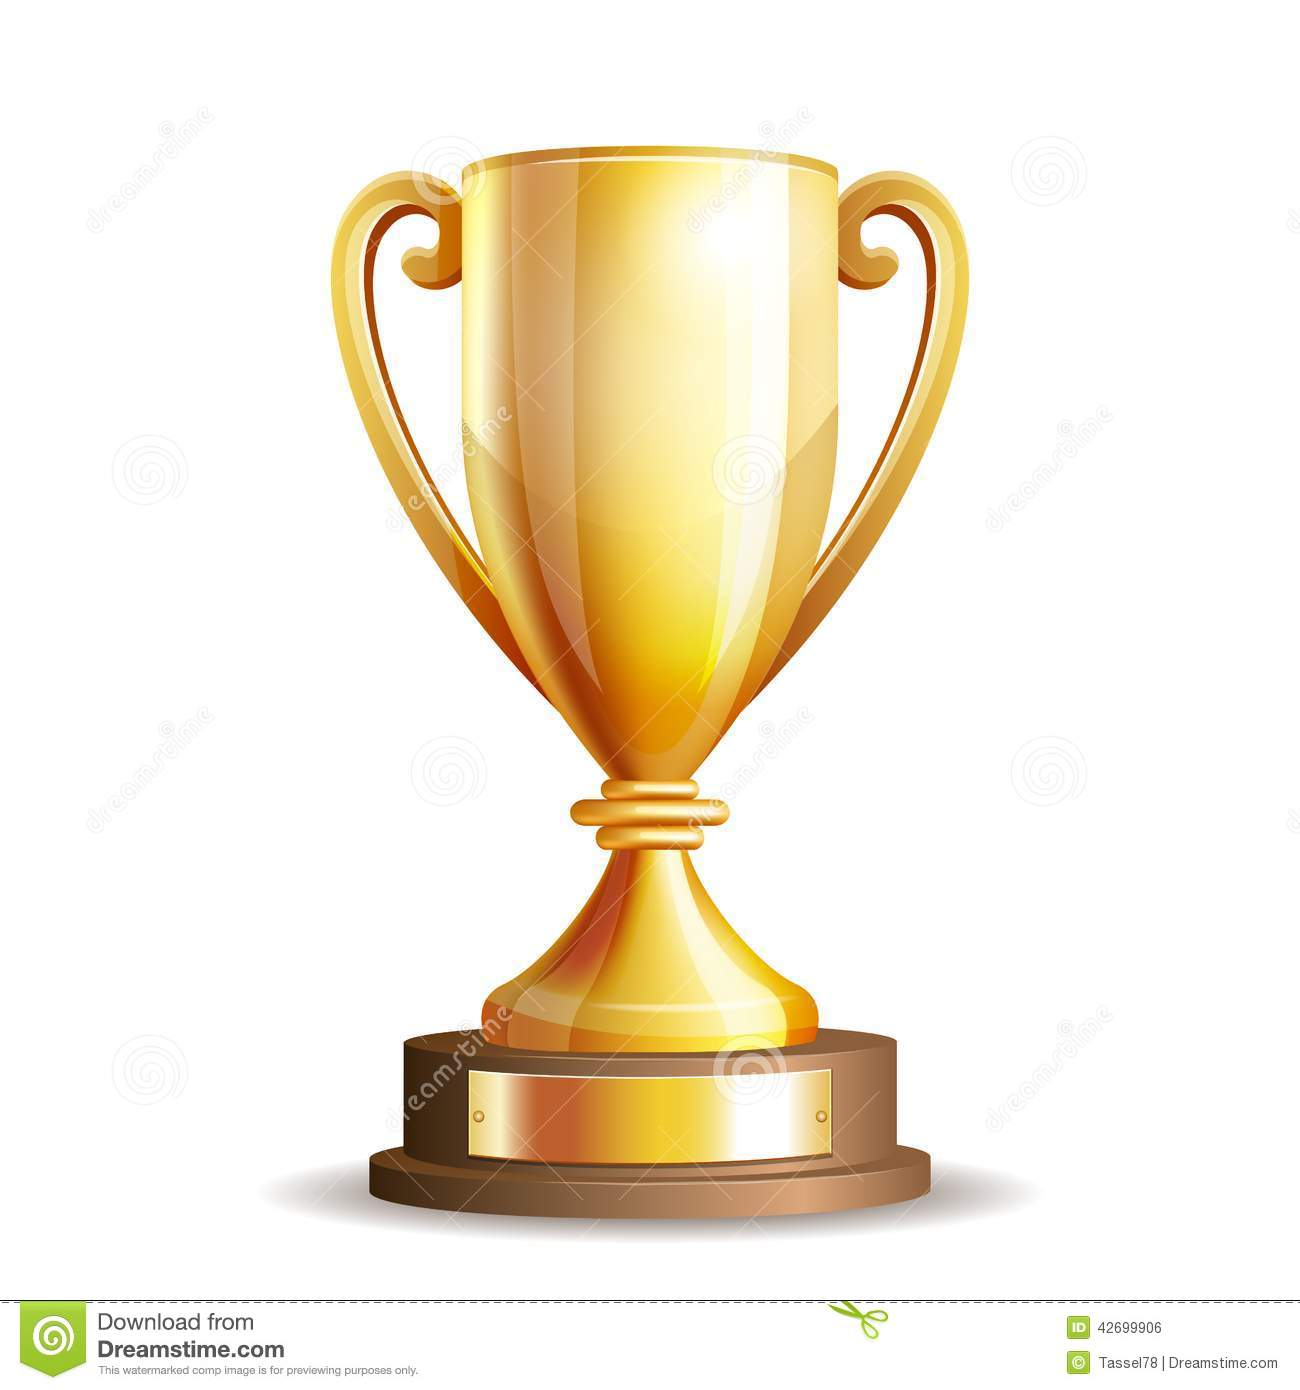 Golden trophy cup isolated on white background. Vector illustration.